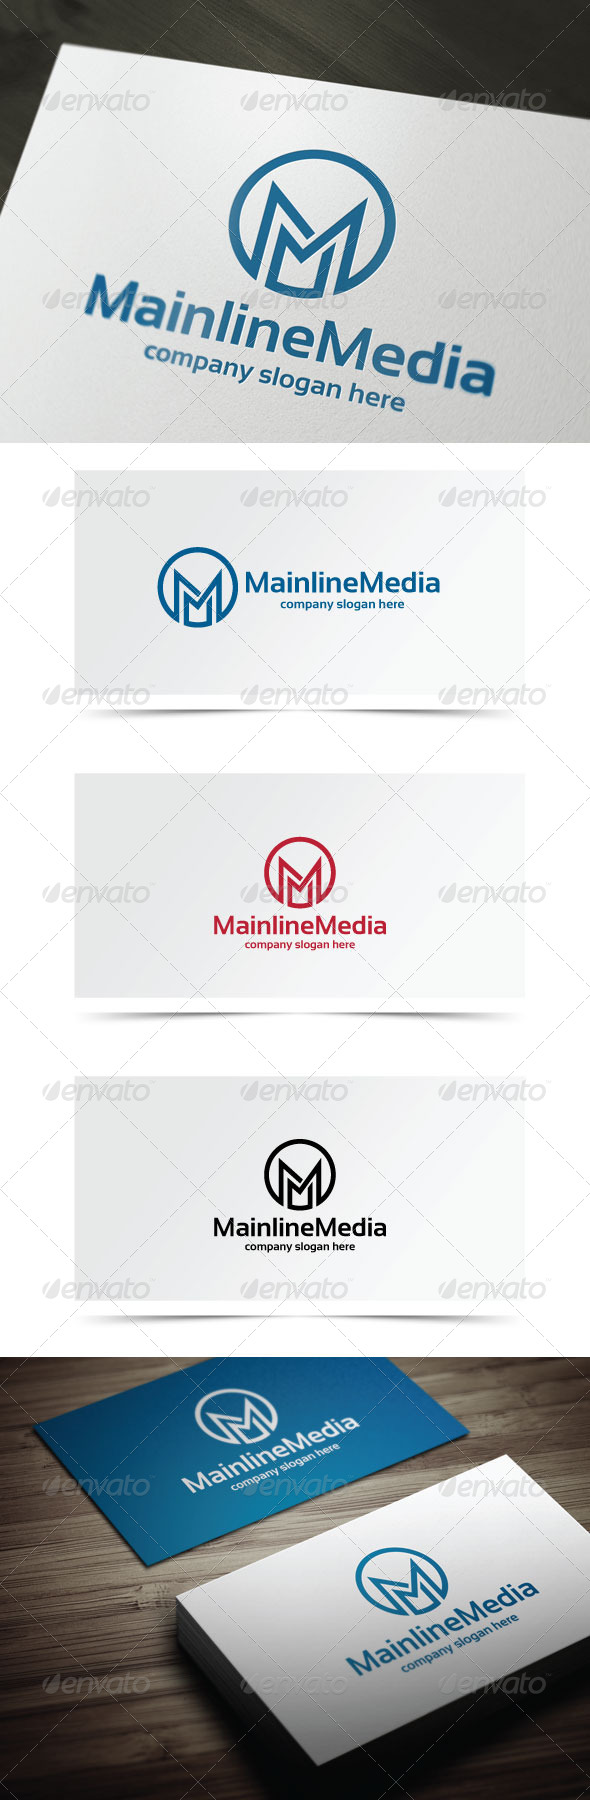 GraphicRiver Mainline Media 7481728